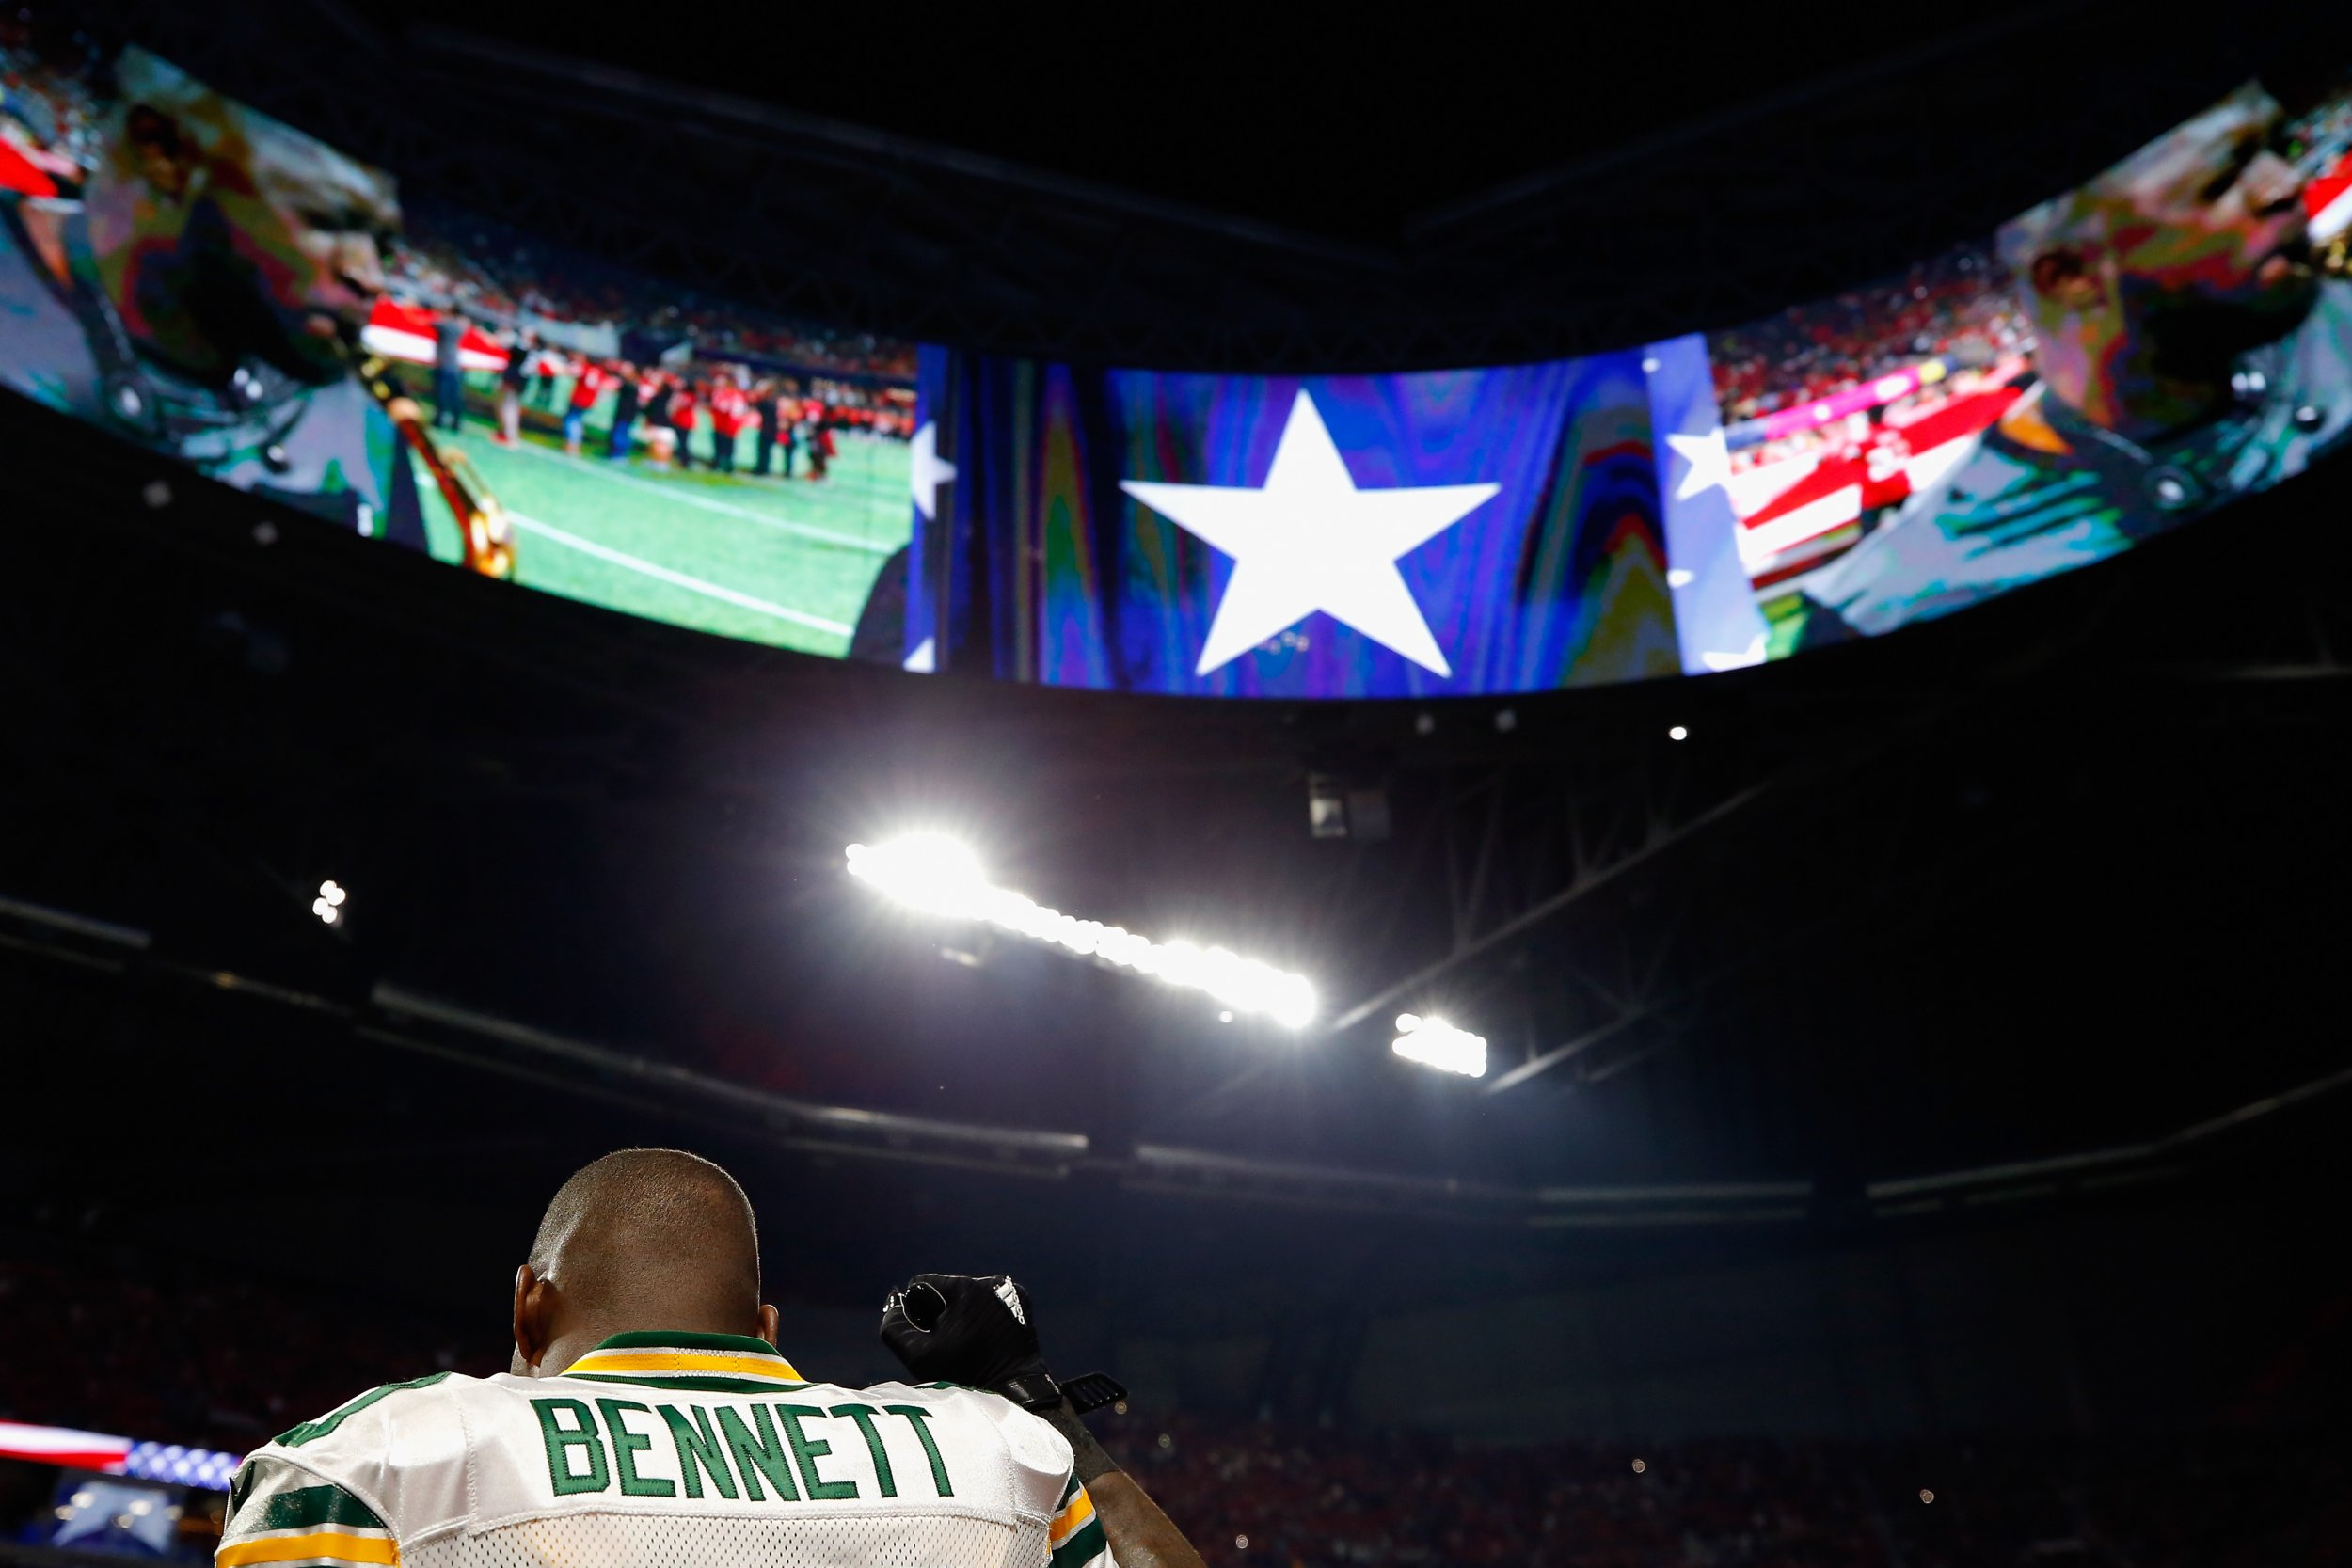 Martellus Bennett of the Green Bay Packers at Mercedes-Benz Stadium, Atlanta, September 17.